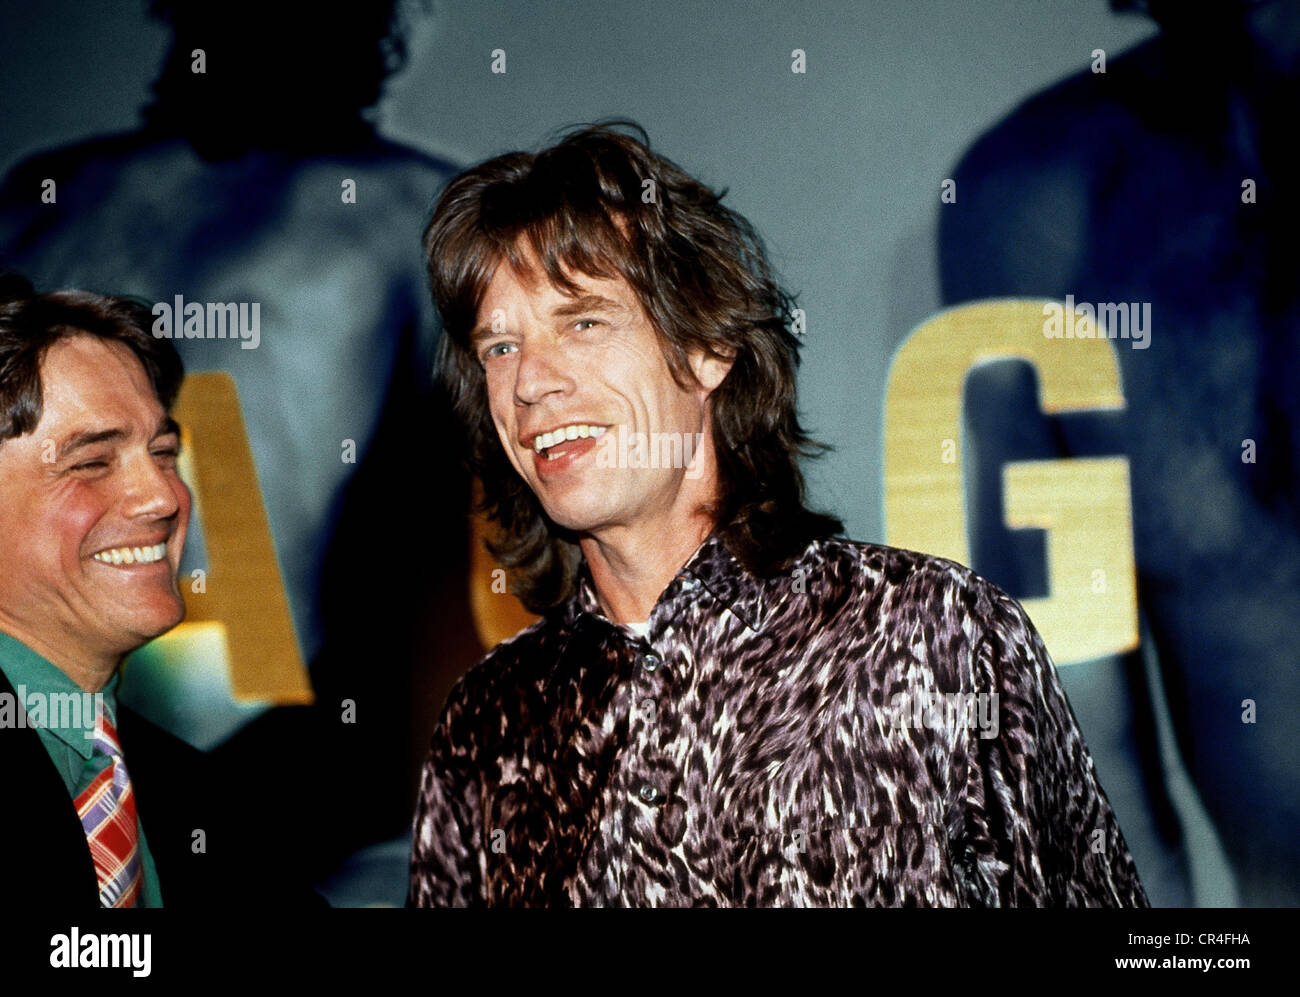 Jagger, Mick, * 26.7.1943, British musician, portrait, receiving the Golden Record for 'Wandering Spirit', - Stock Image